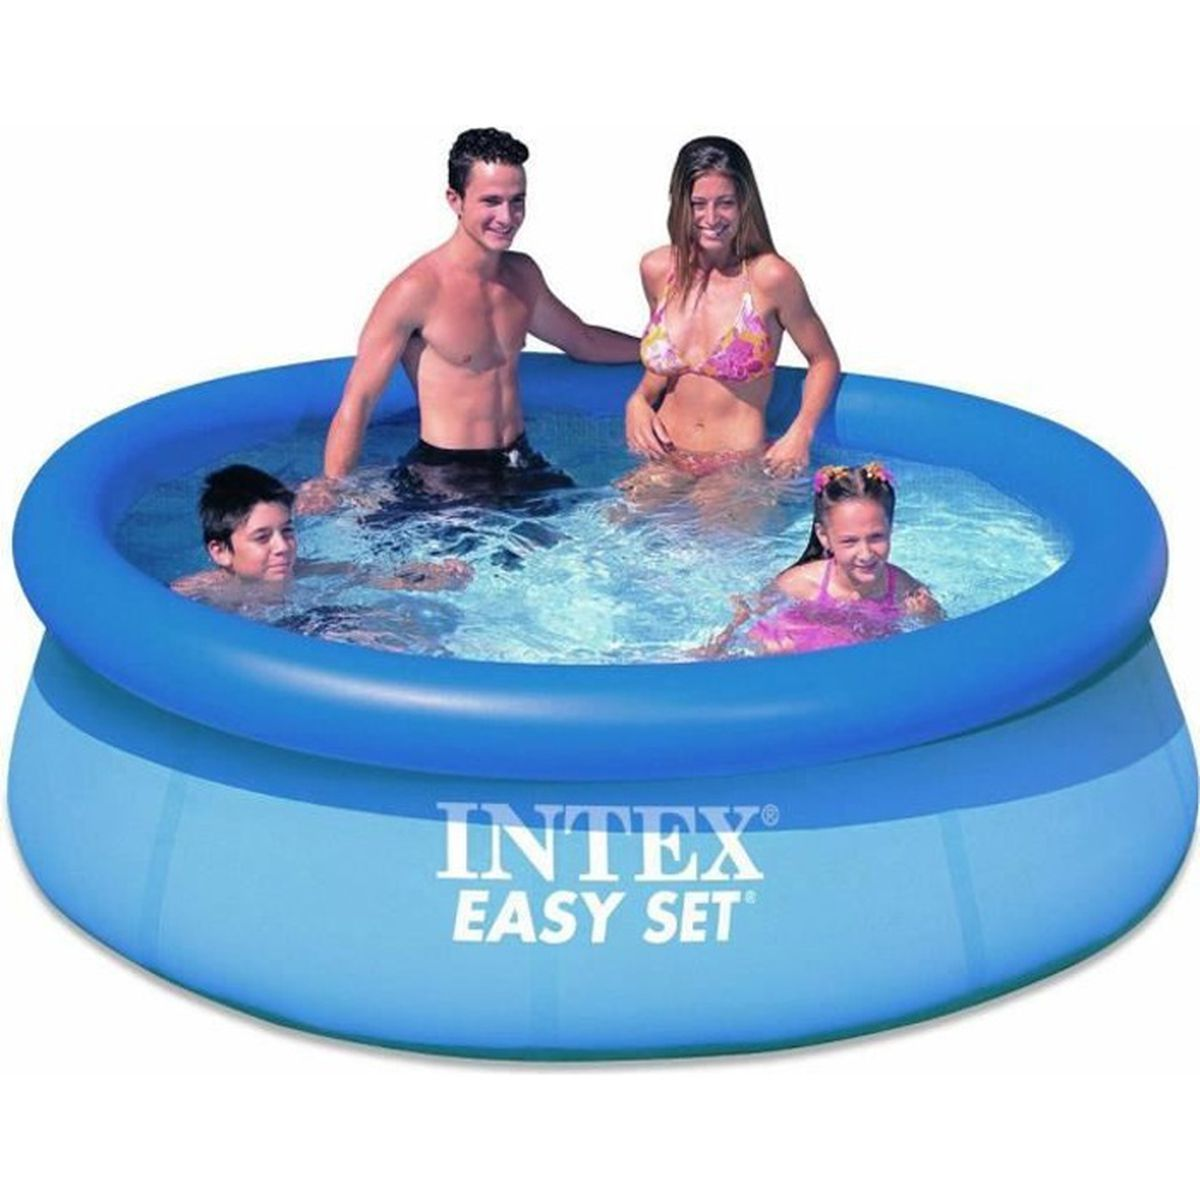 Piscine autoport e intex easy set 183 x 51 cm achat for Piscine autoportee intex leclerc